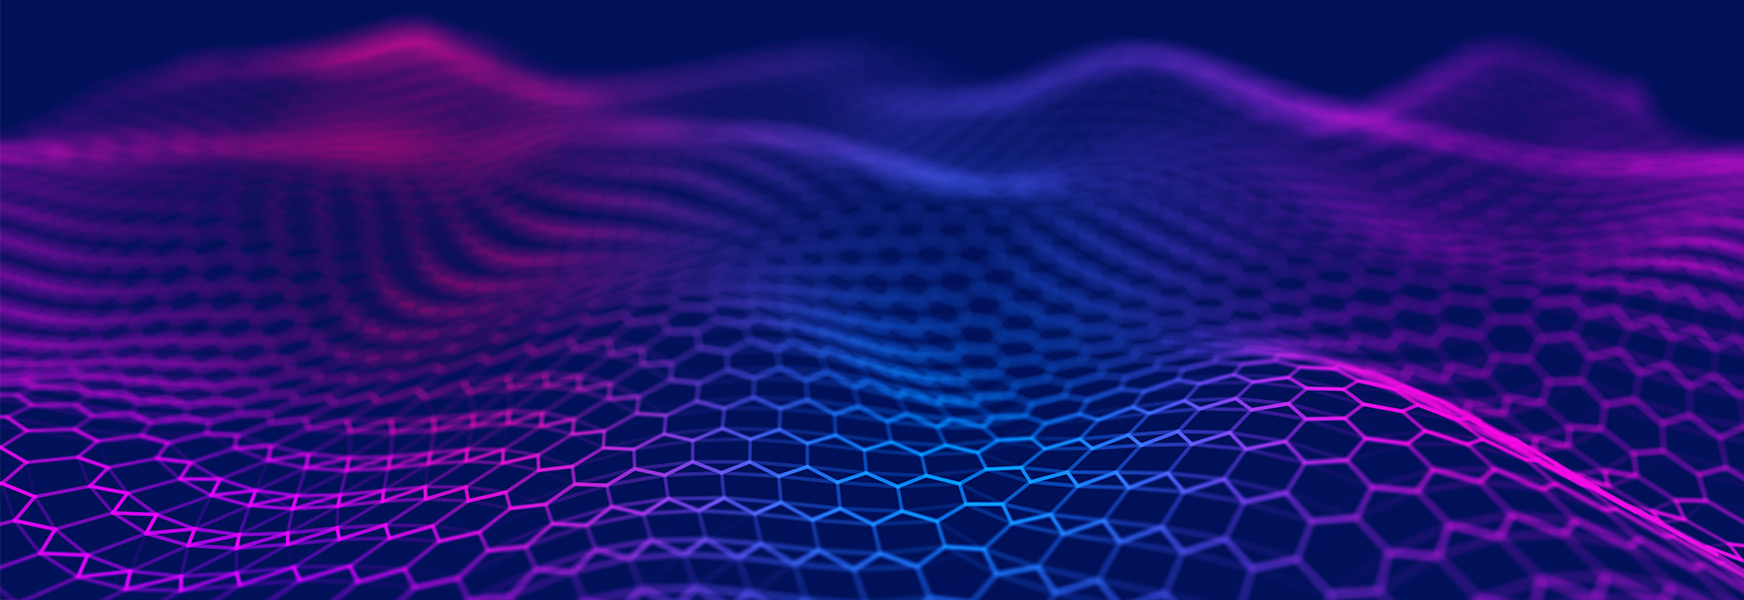 Wavy purple hexagonal graphic design